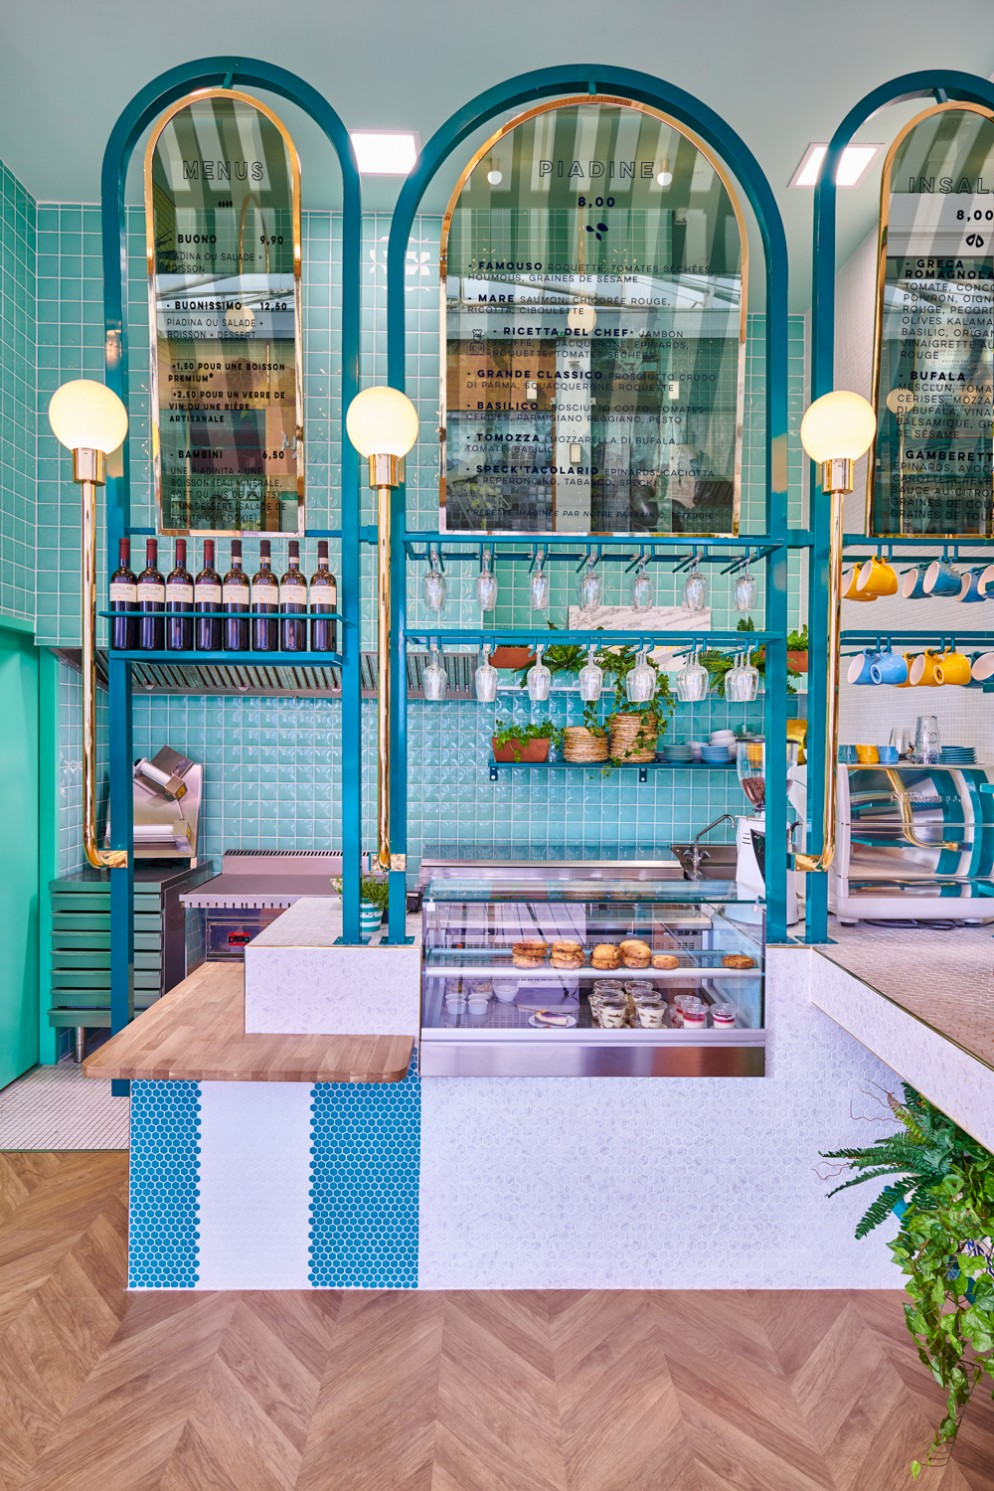 piadineria-lyon-francia-by-masquespacio-living-corriere-10